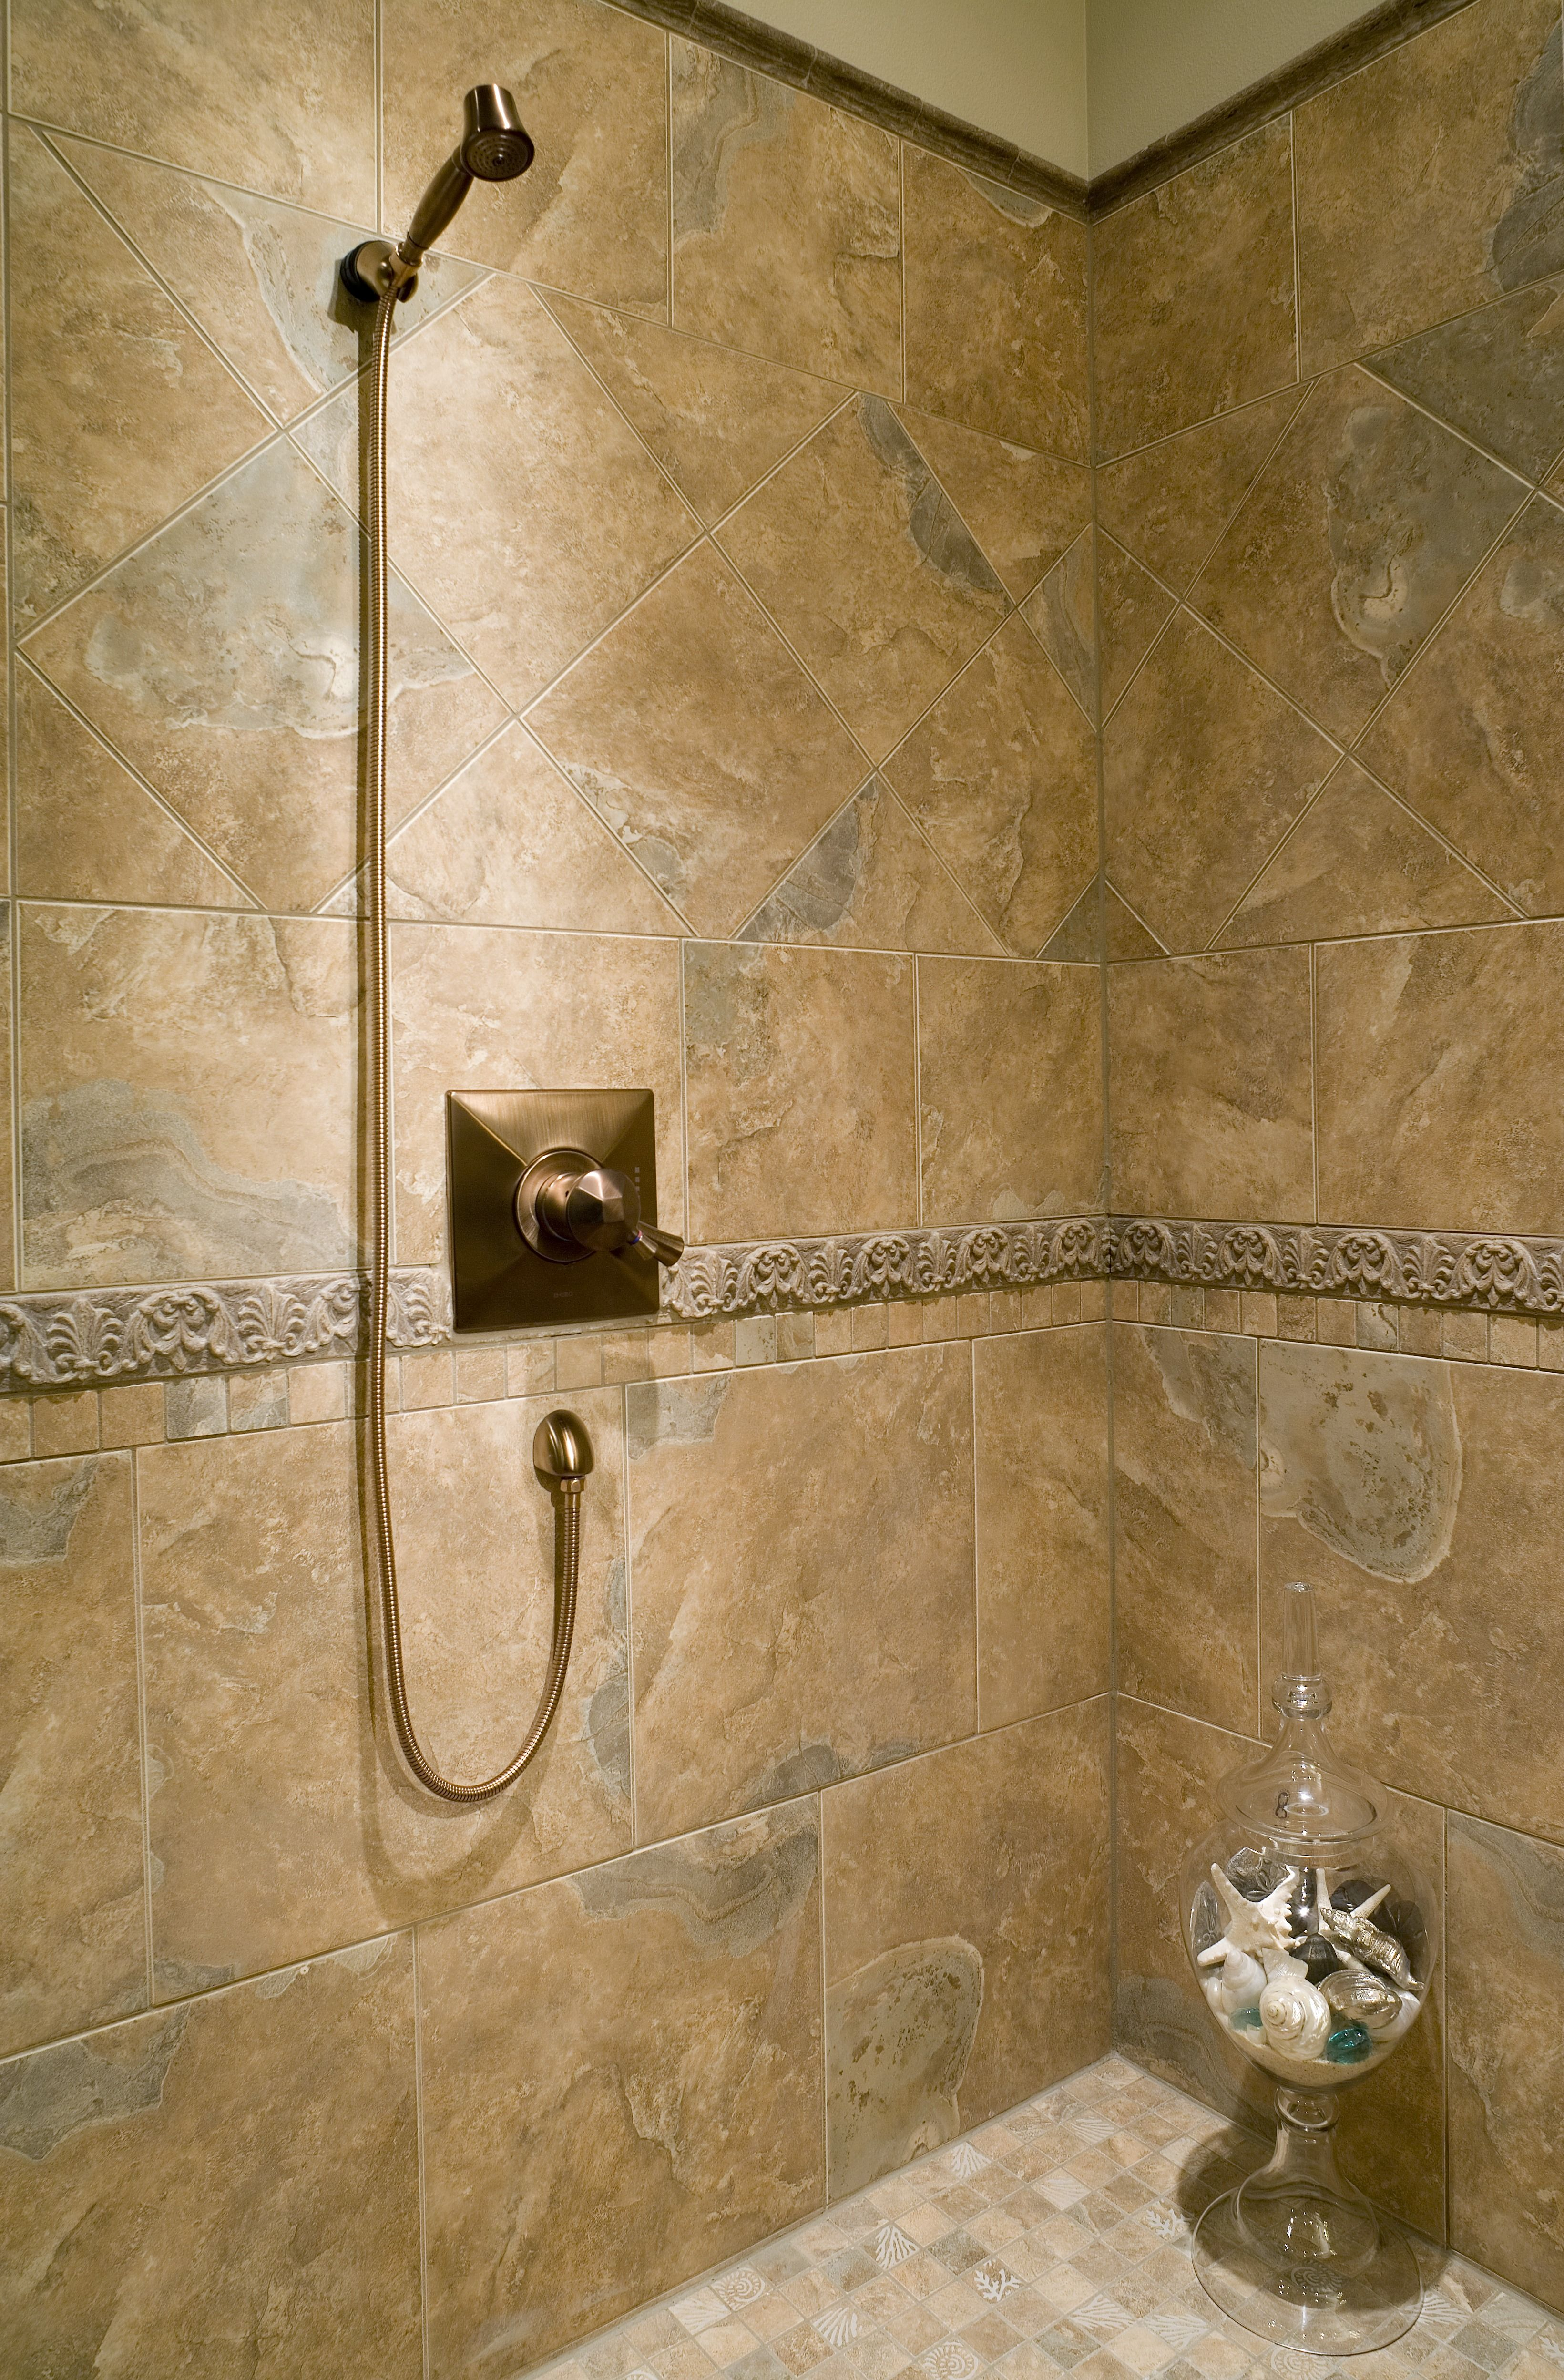 Decorative Accent Tiles For Bathroom Adorable 11 Perfect Shower Heads For Your Master Bathroom  Decorative Inspiration